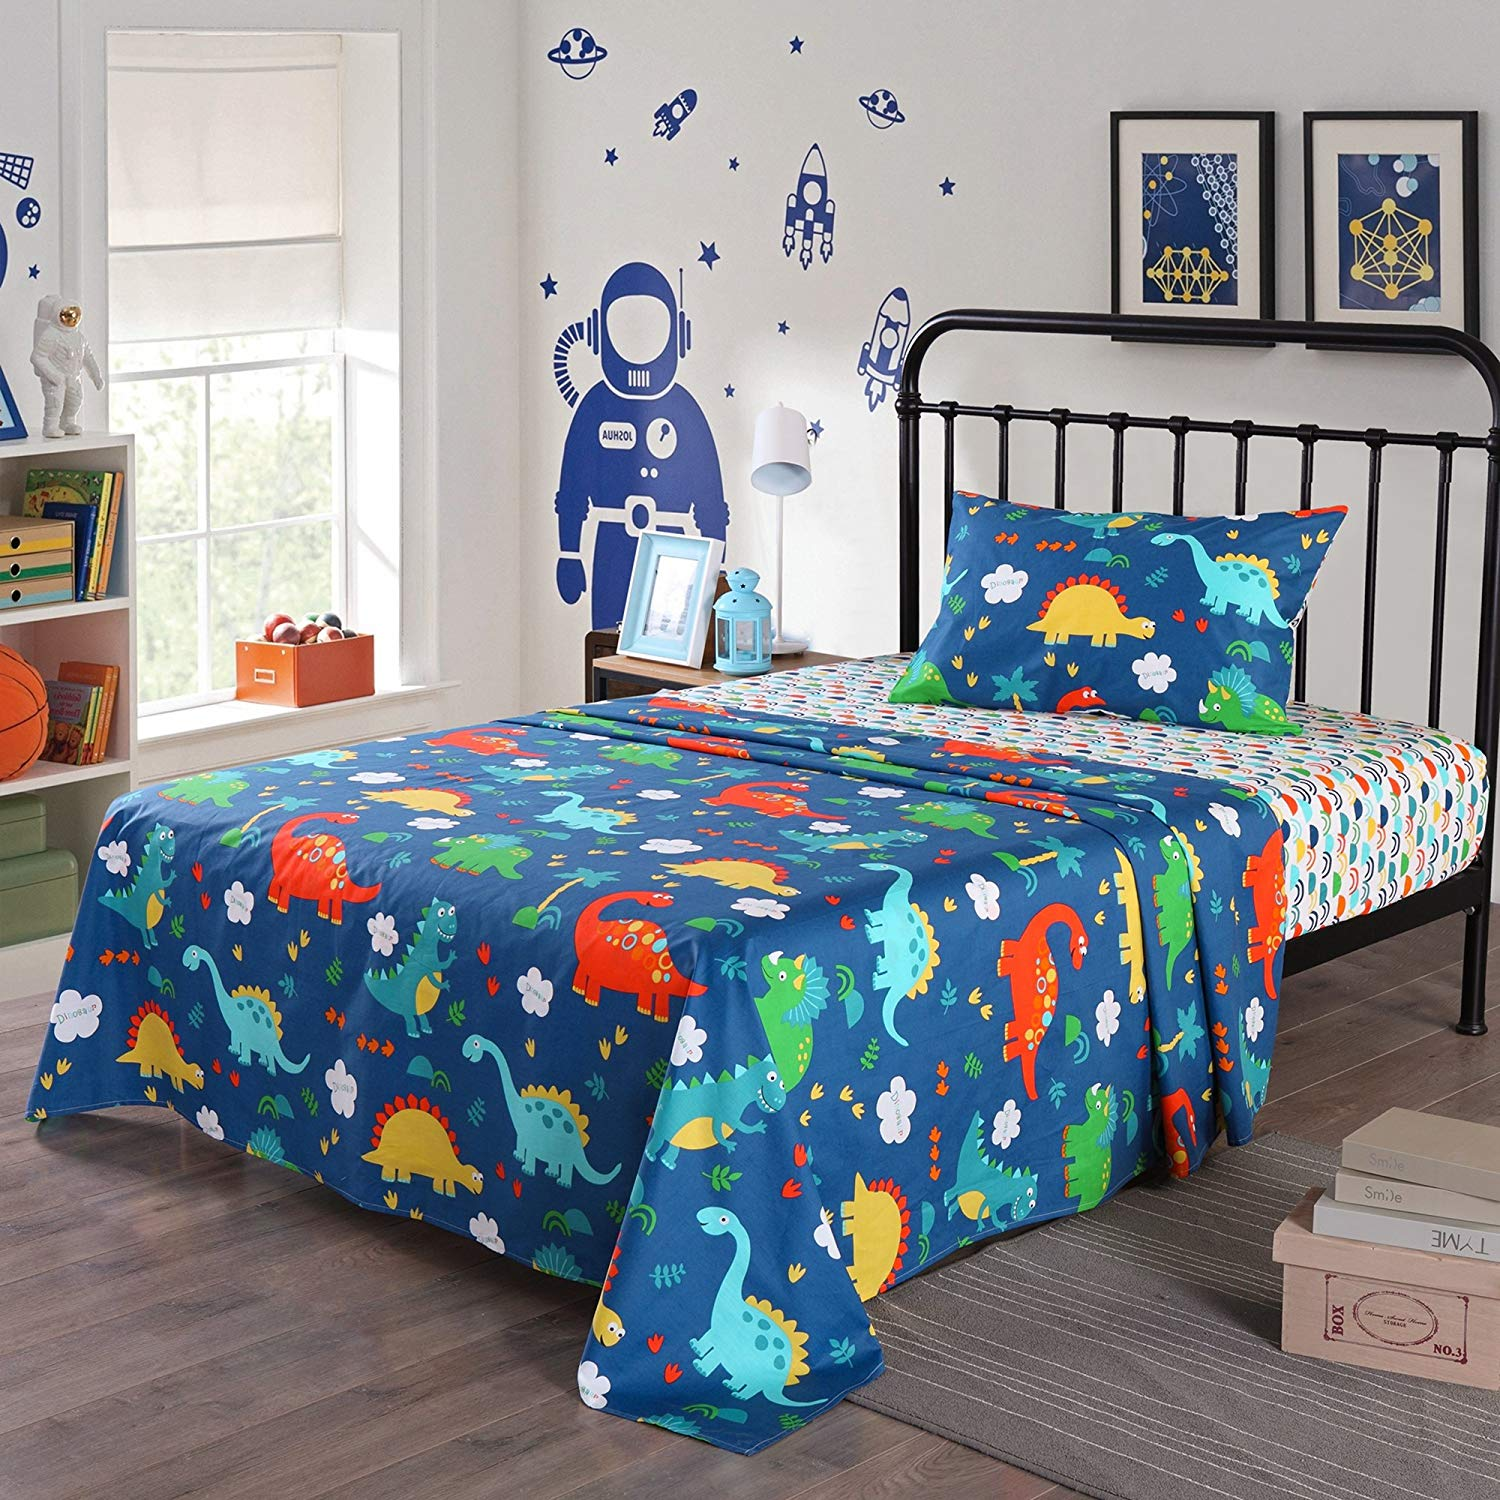 3D Dirt Bike Print Bed Sheet Set Motocross Rider Extreme Sport Fitted Sheet for Kids Boys Youth Teens Watercolor Motorcycle Pattern Black Bedding Set Decor 2Pcs Bed Cover with 1 Pillowcase Twin Size